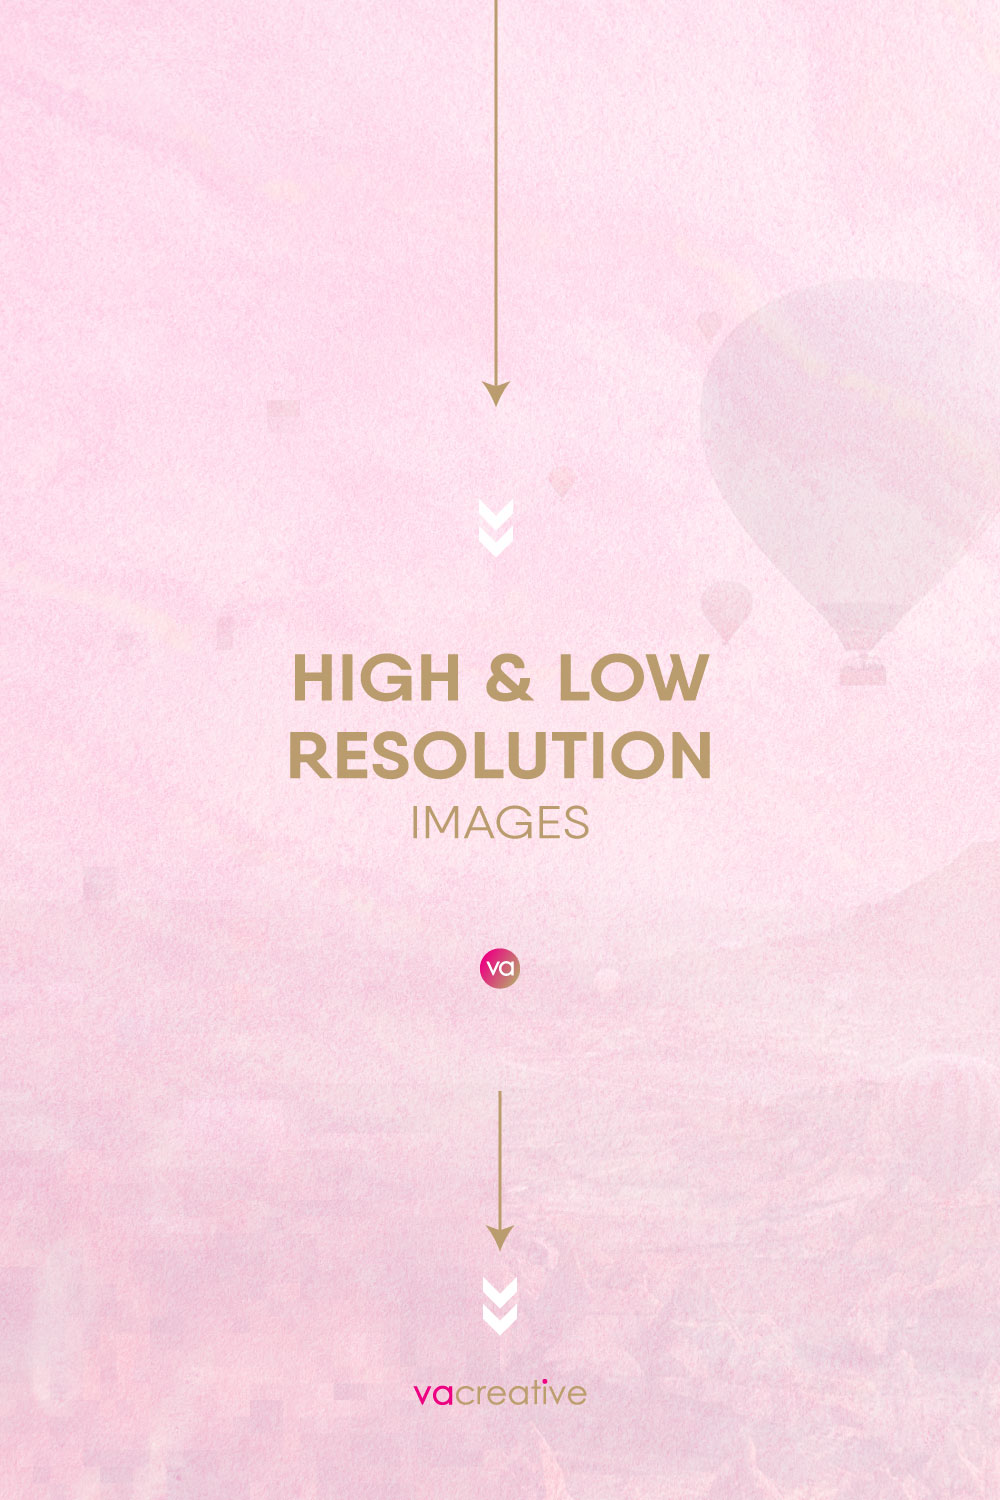 HIGH & LOW RESOLUTION IMAGES